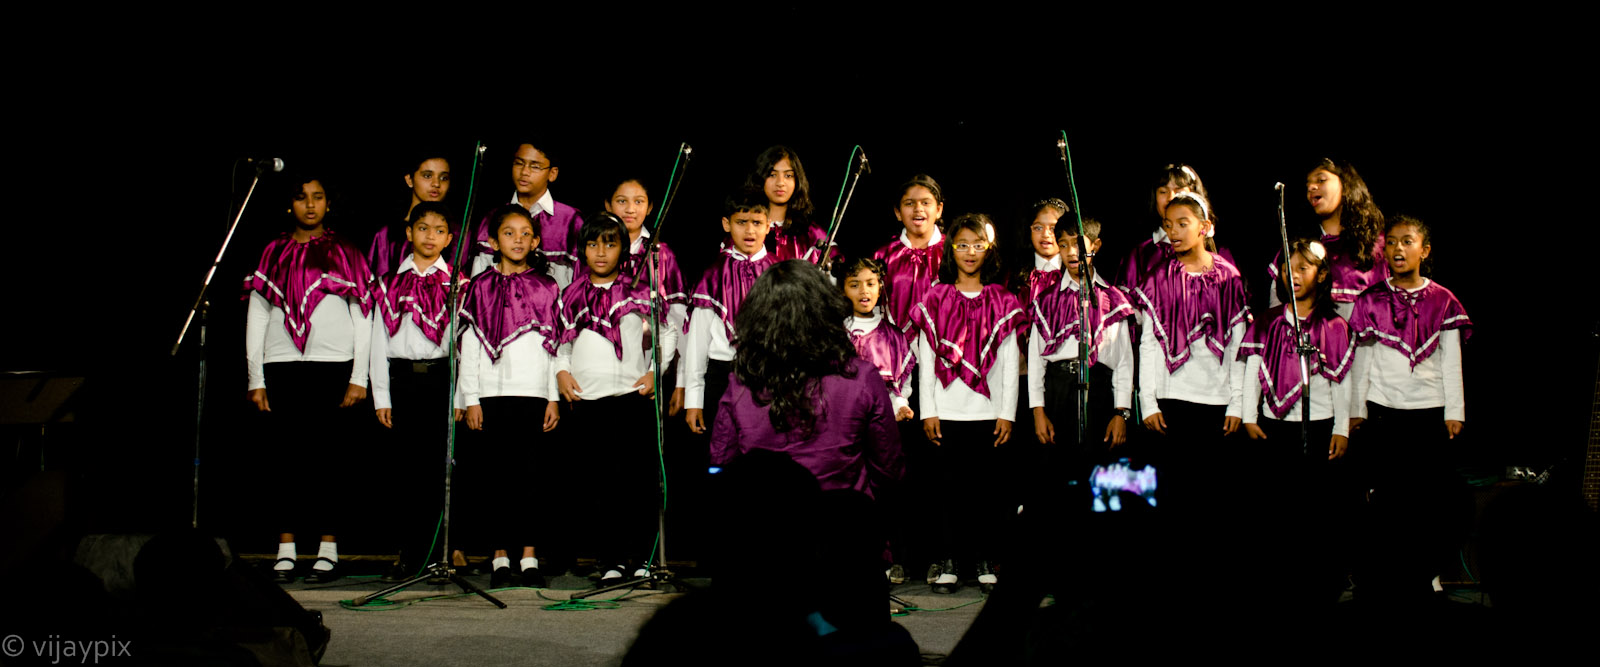 The-Harmony-kids-choir